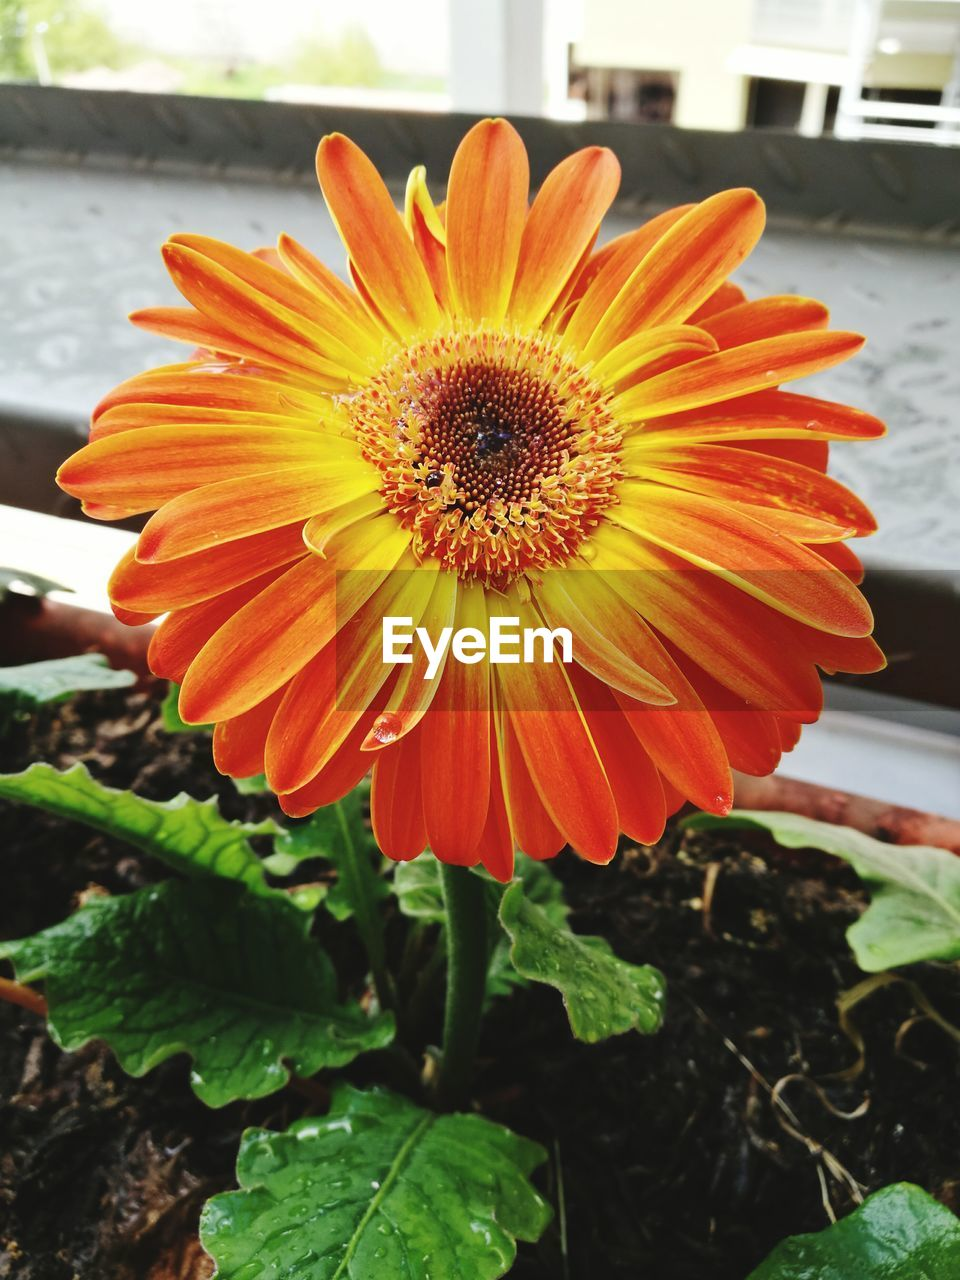 flower, petal, flower head, fragility, freshness, beauty in nature, nature, plant, growth, orange color, blooming, pollen, outdoors, day, no people, close-up, gazania, springtime, focus on foreground, yellow, leaf